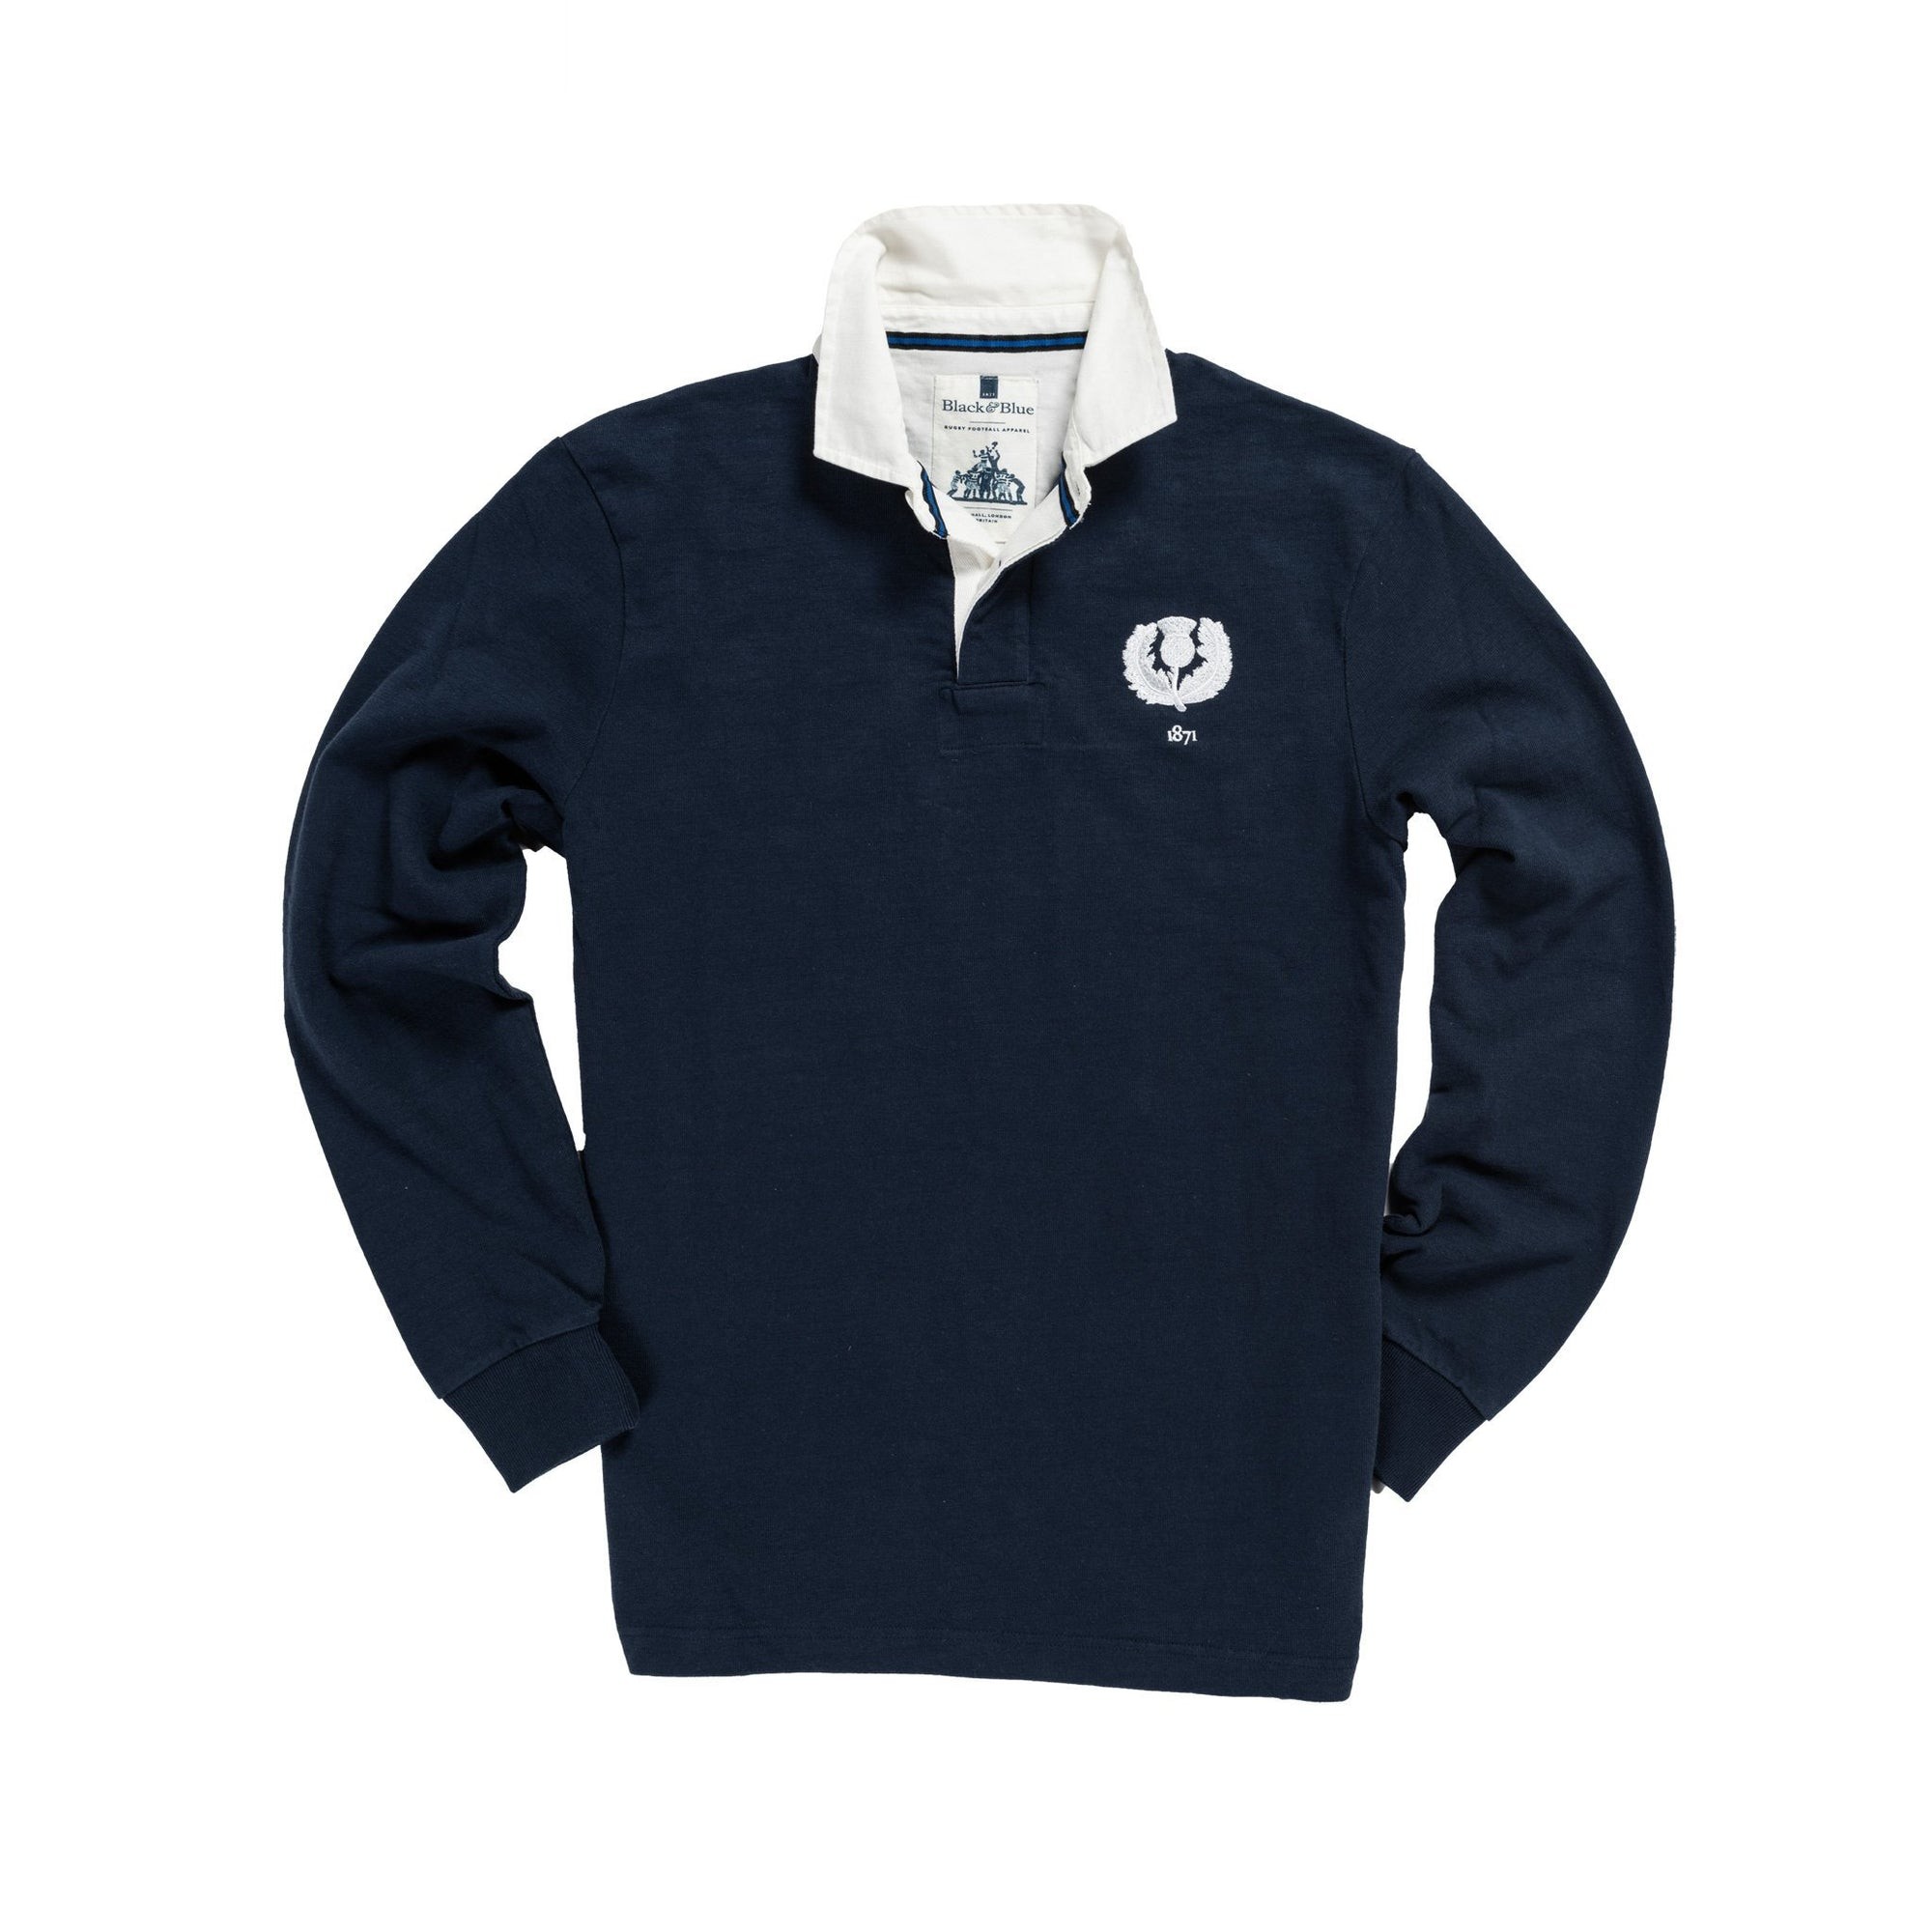 Black & Blue 1871 | Scotland 1871 Rugby Shirt | Heavy Cotton Rugby Shirt